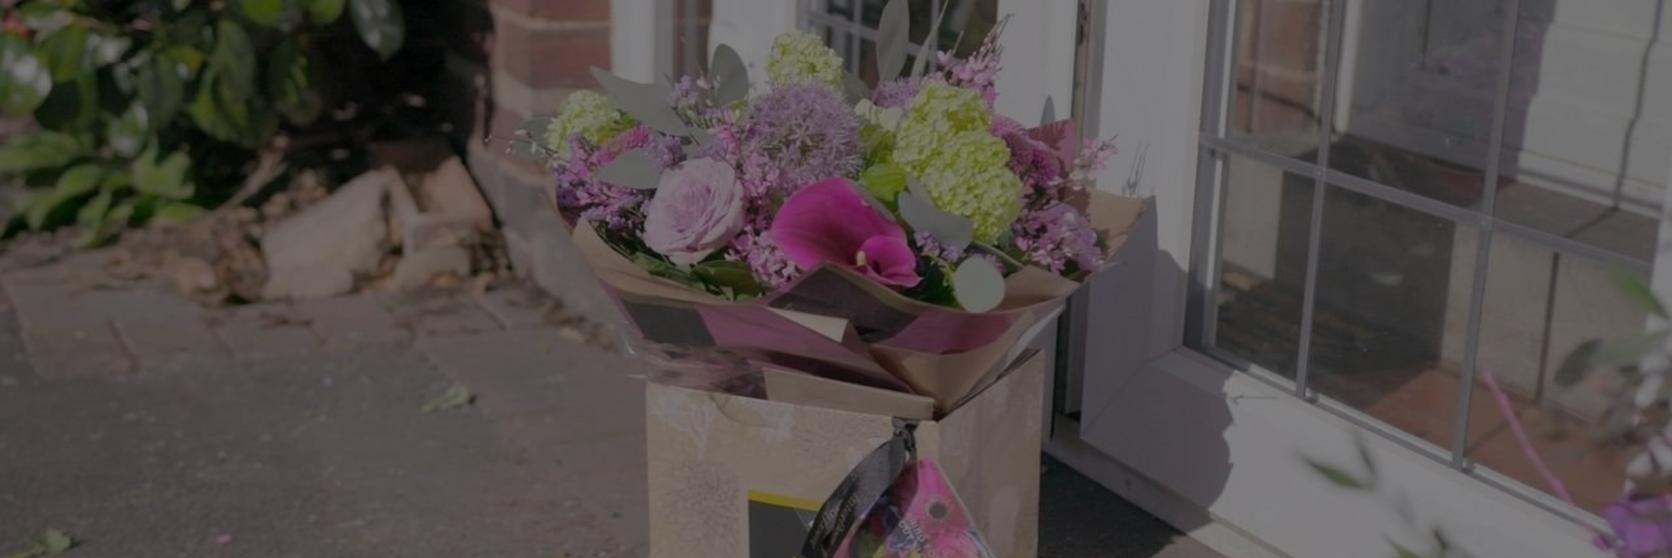 Doorstep-moments-for-international-womens-day-1